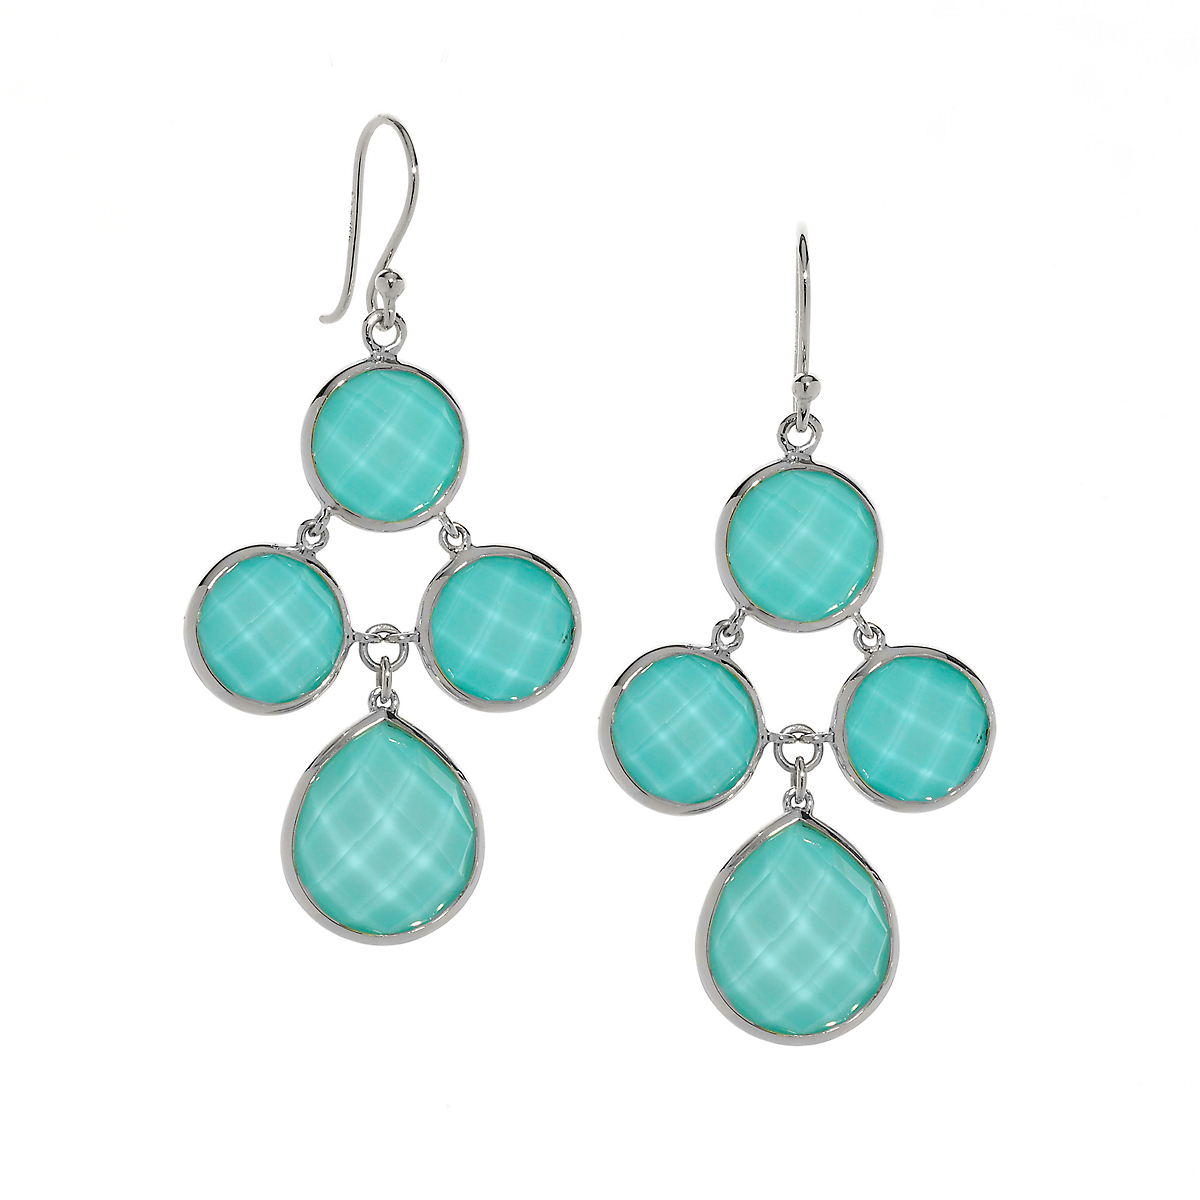 Elizabeth Showers White Quartz Over Turquoise Chandelier Earrings